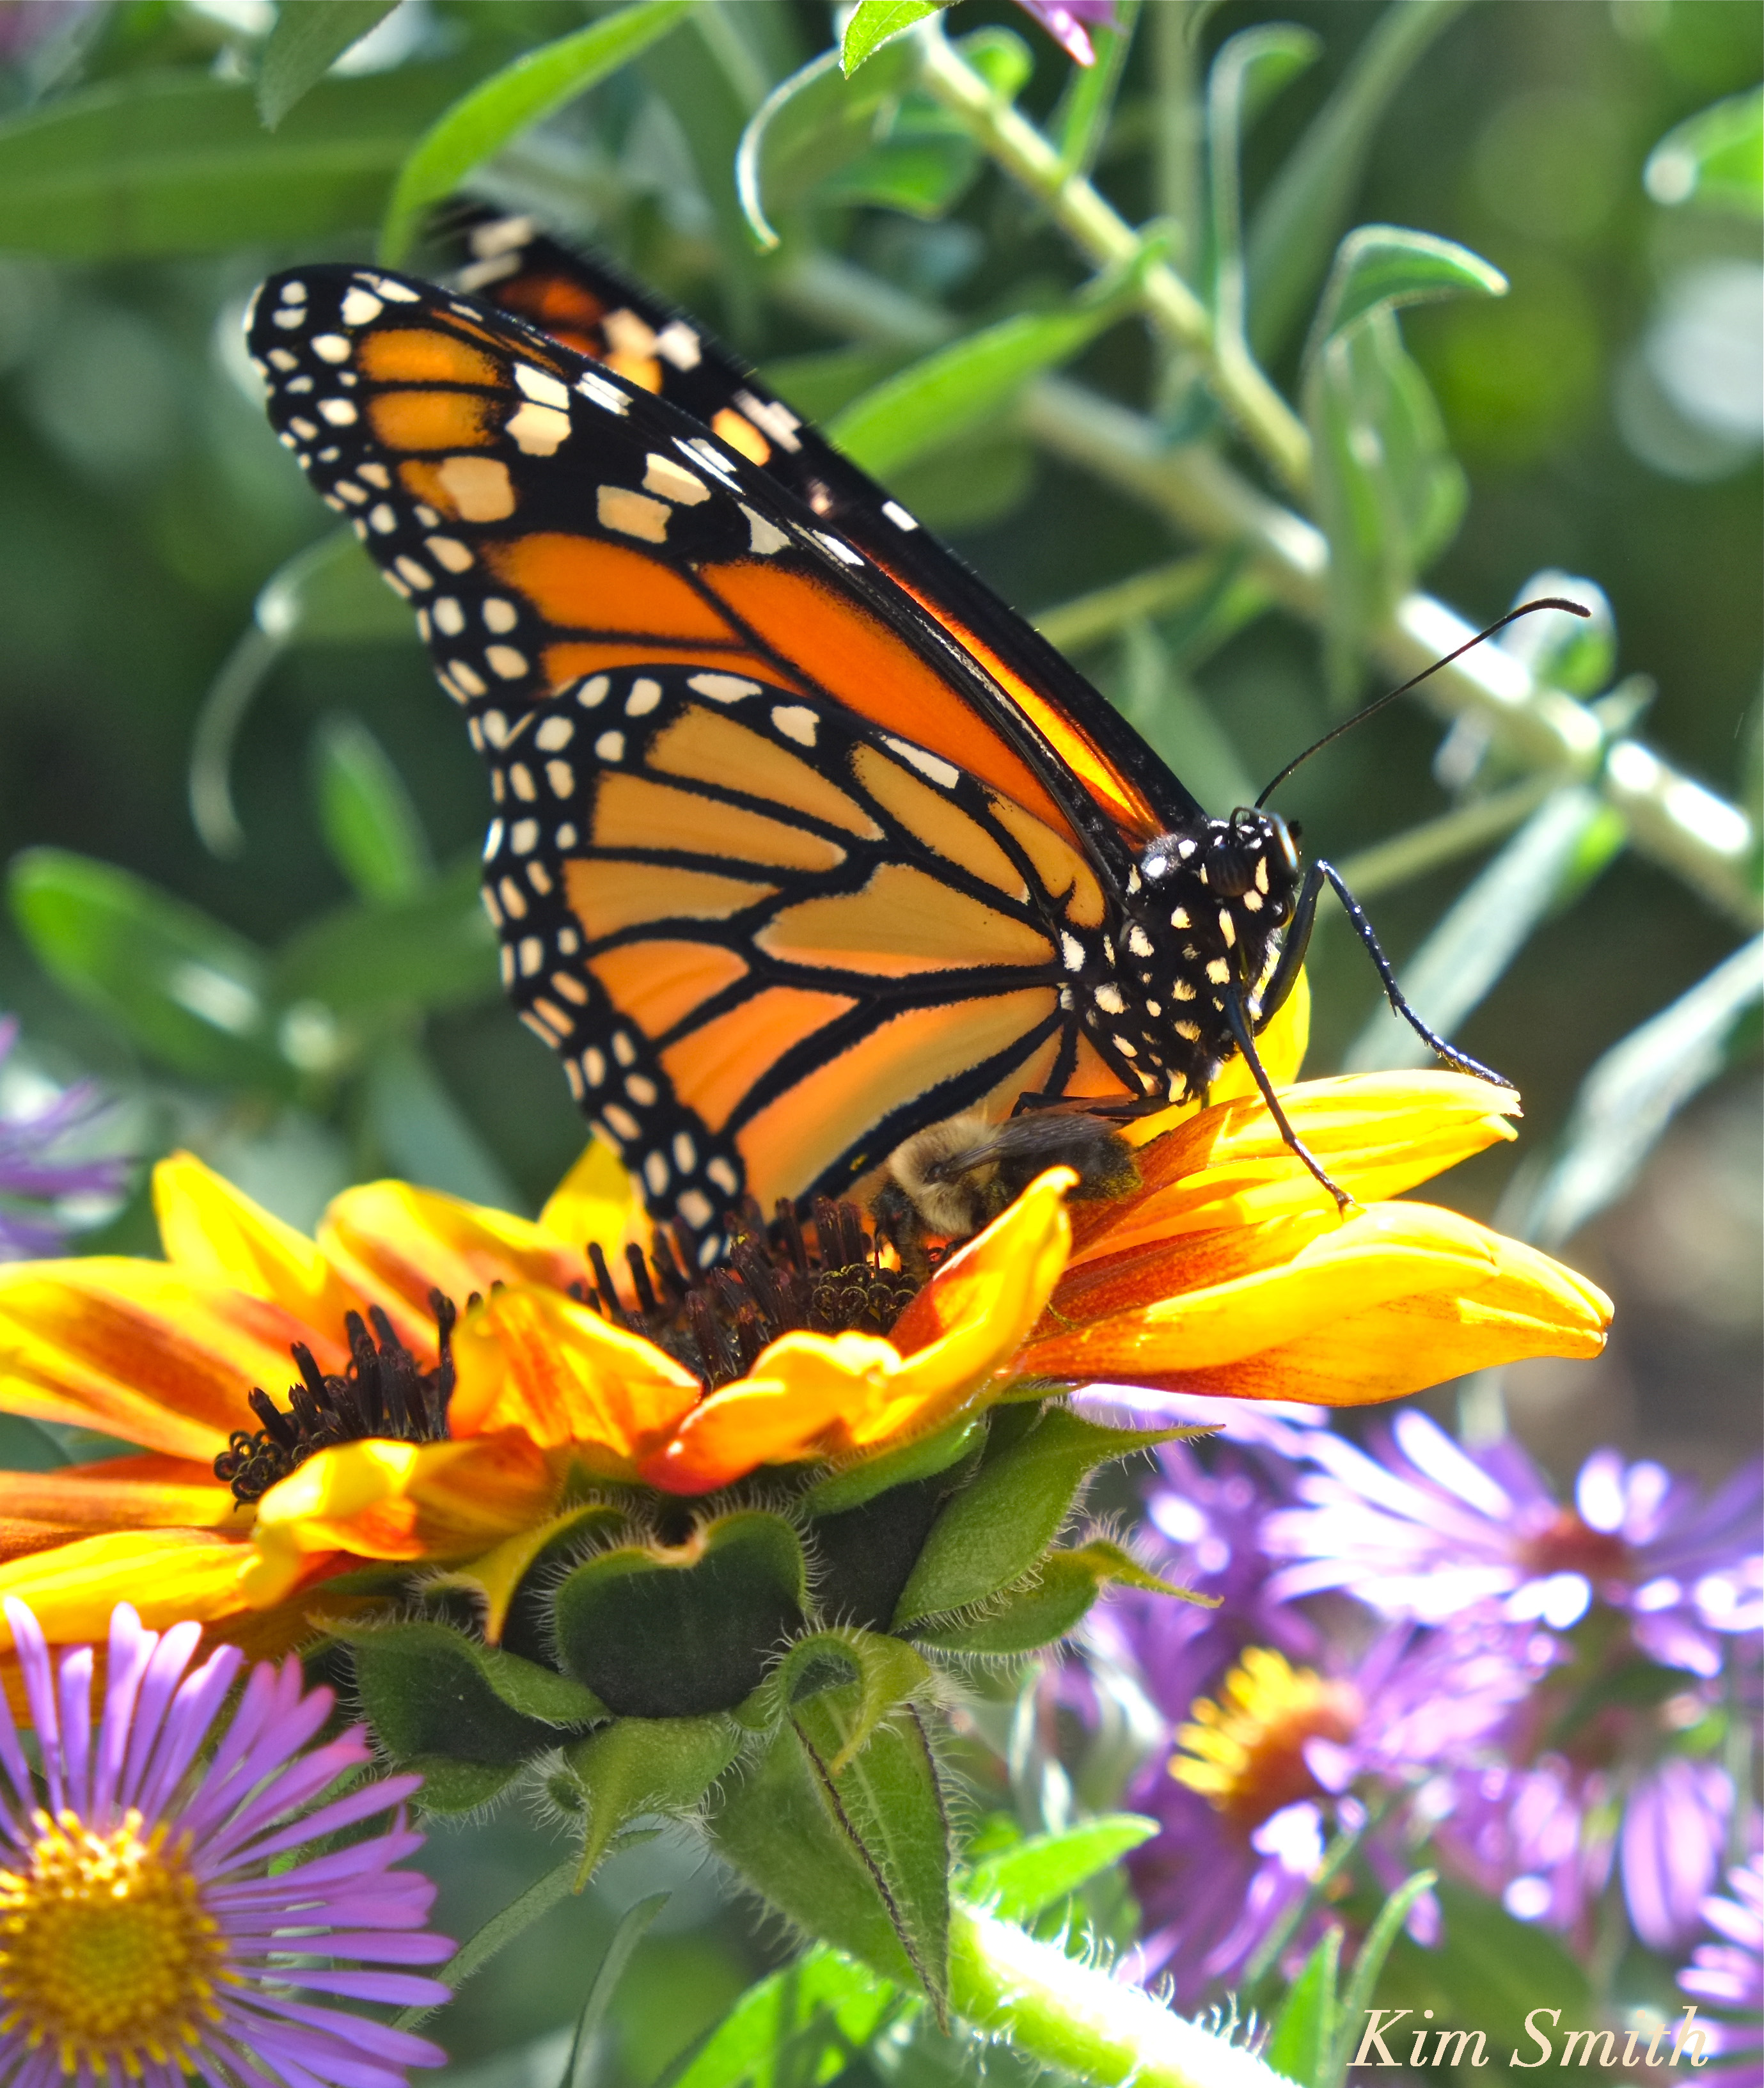 Monarch Butterfly Migration | GoodMorningGloucester - photo#25